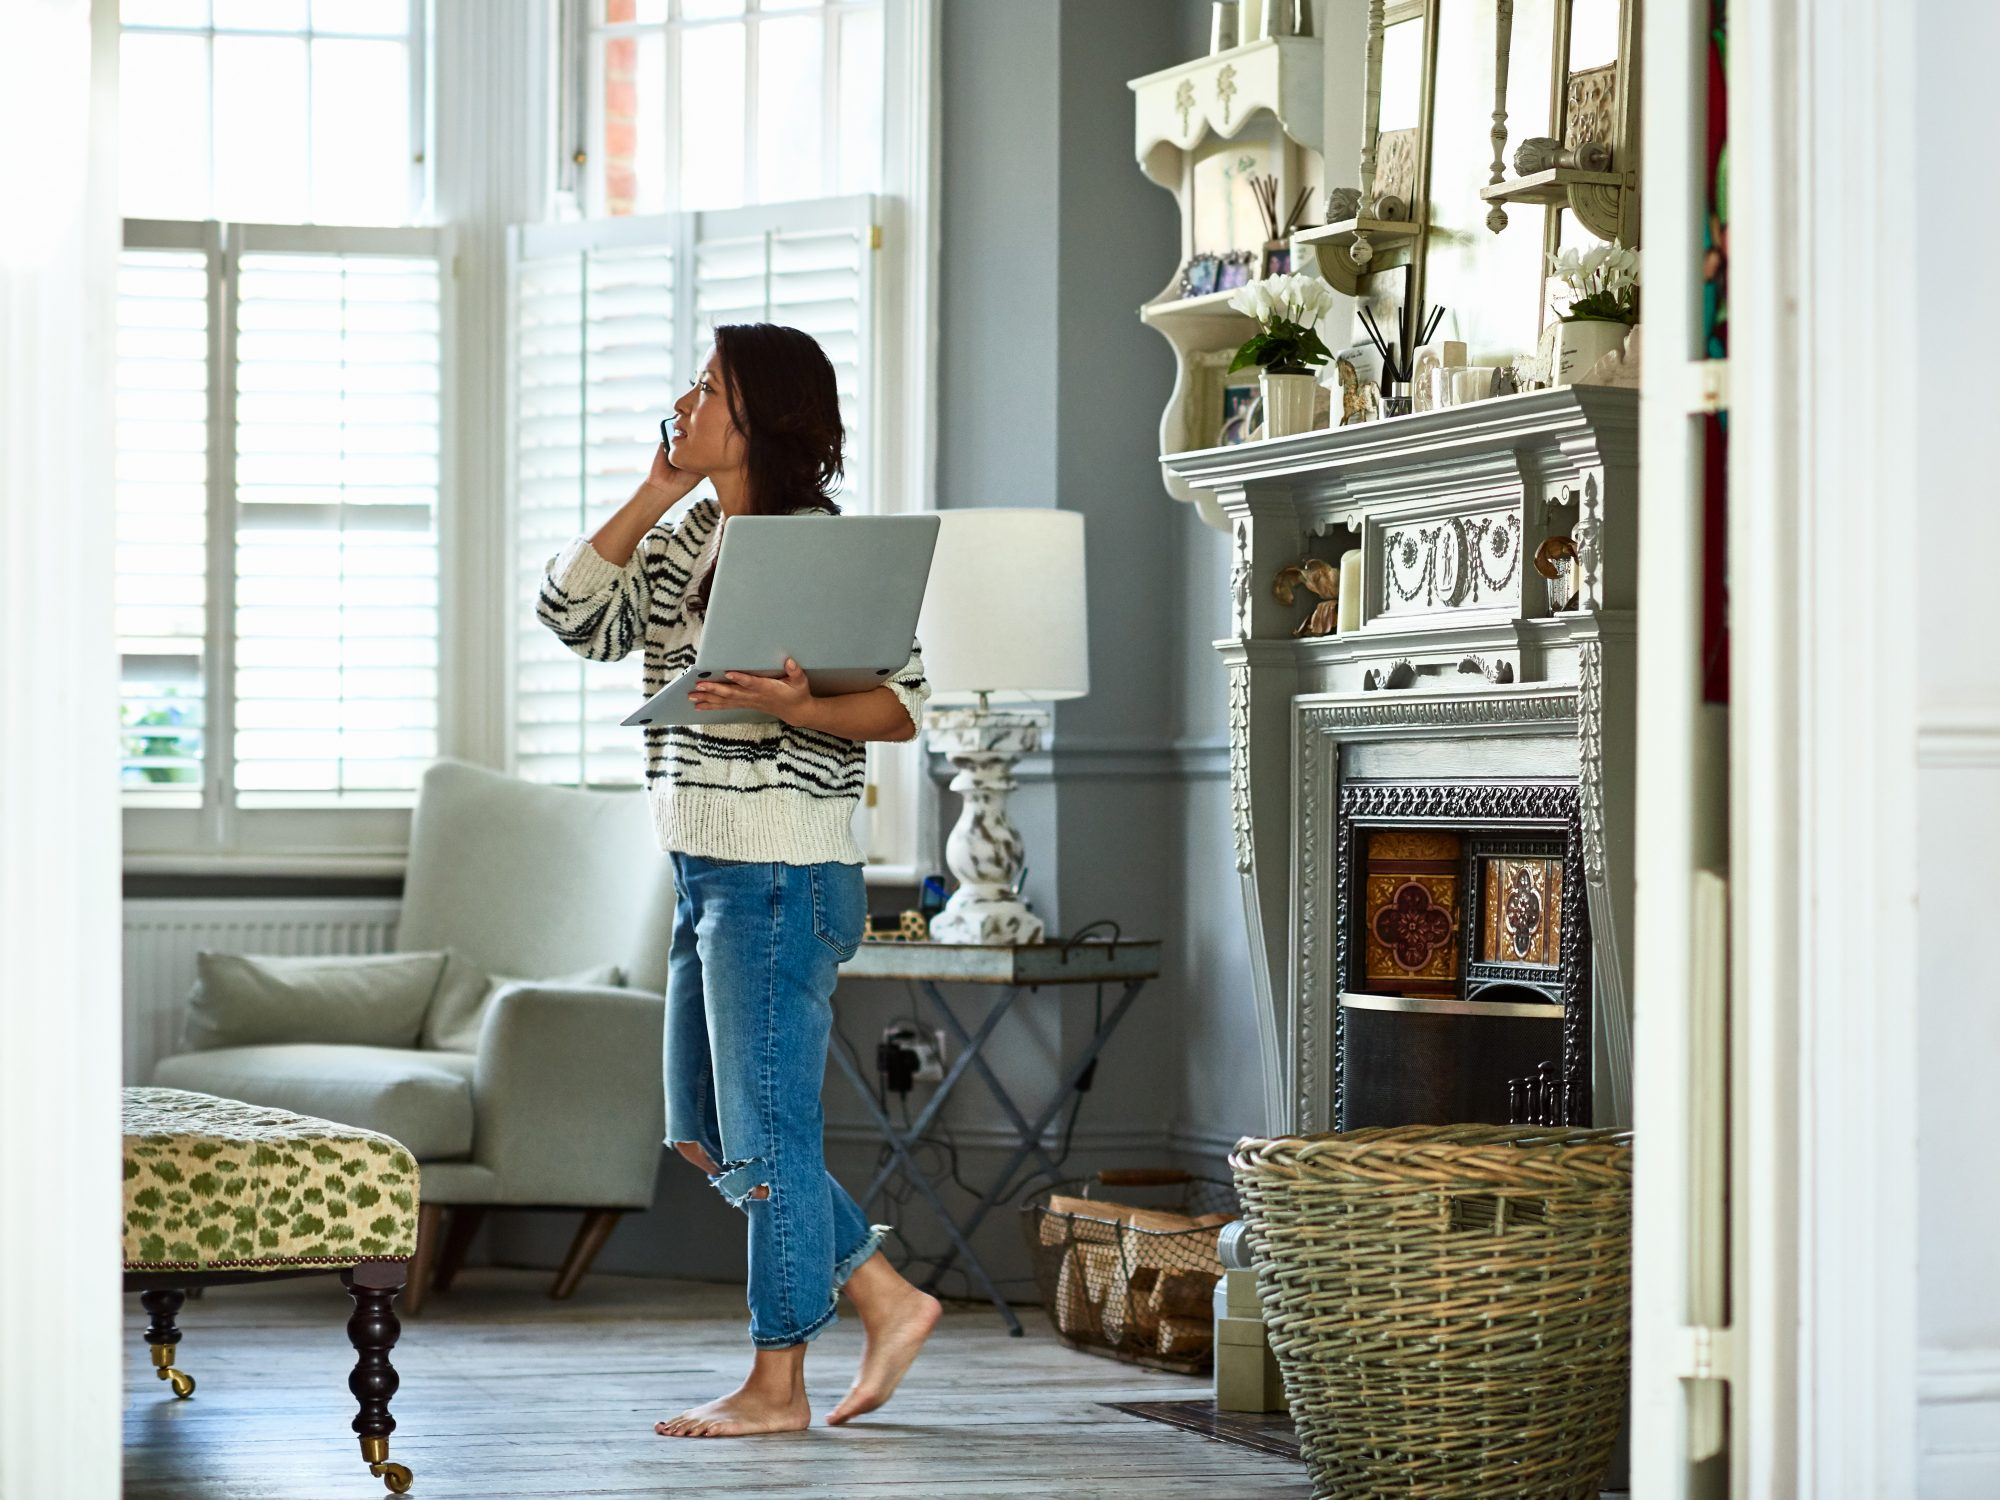 working-from-home-permanently: woman holding a laptop and talking on the phone at home